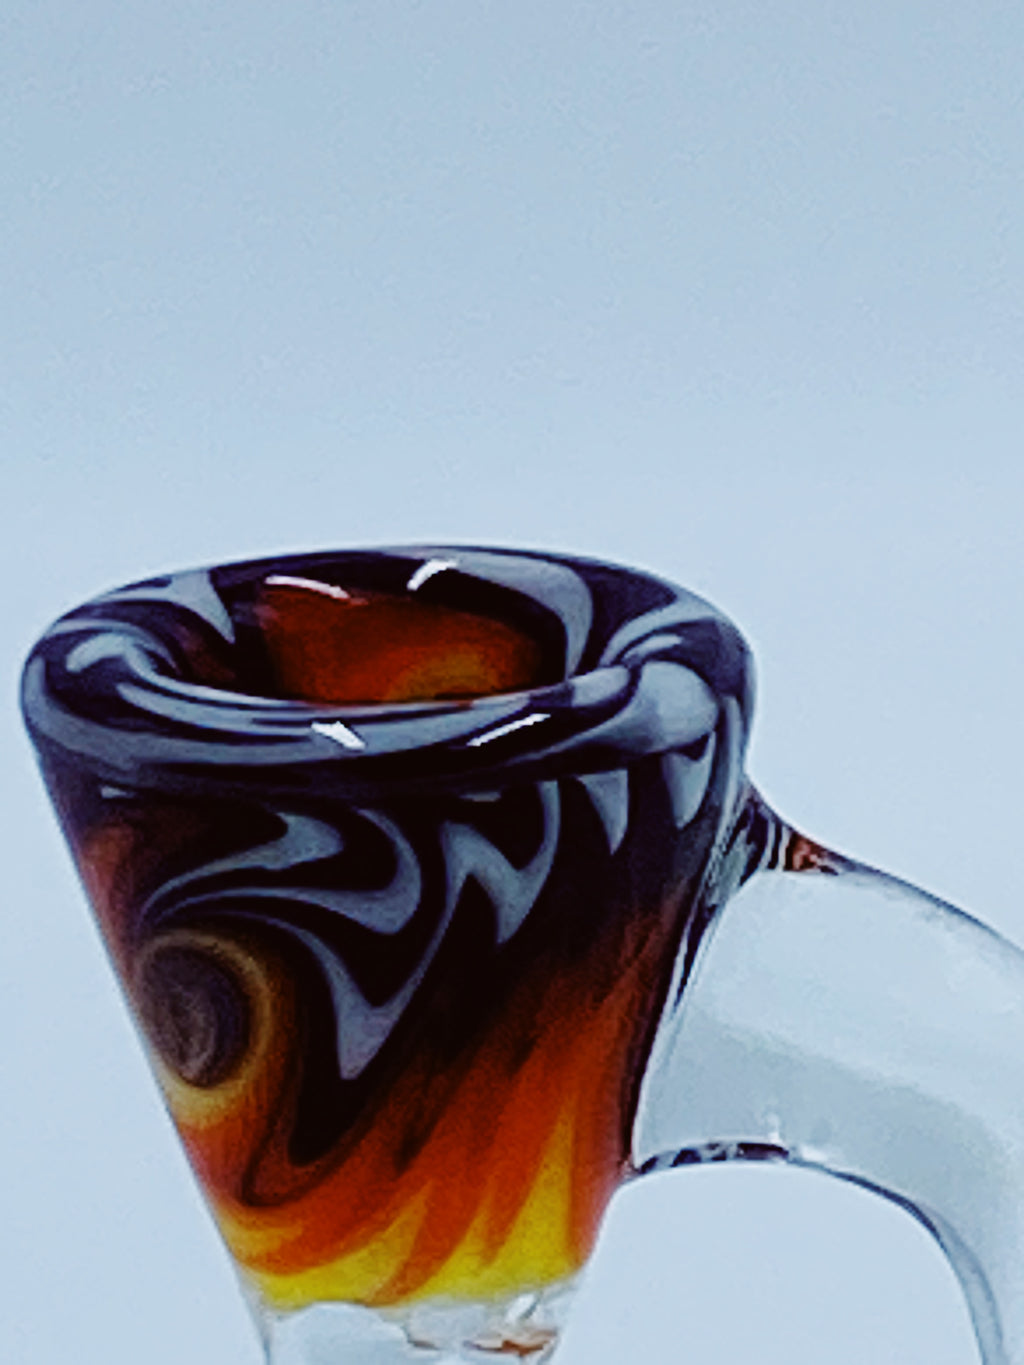 KOBB GLASS 14MM UV FIRE BOWL - Smoke Country - Land of the artistic glass blown bongs